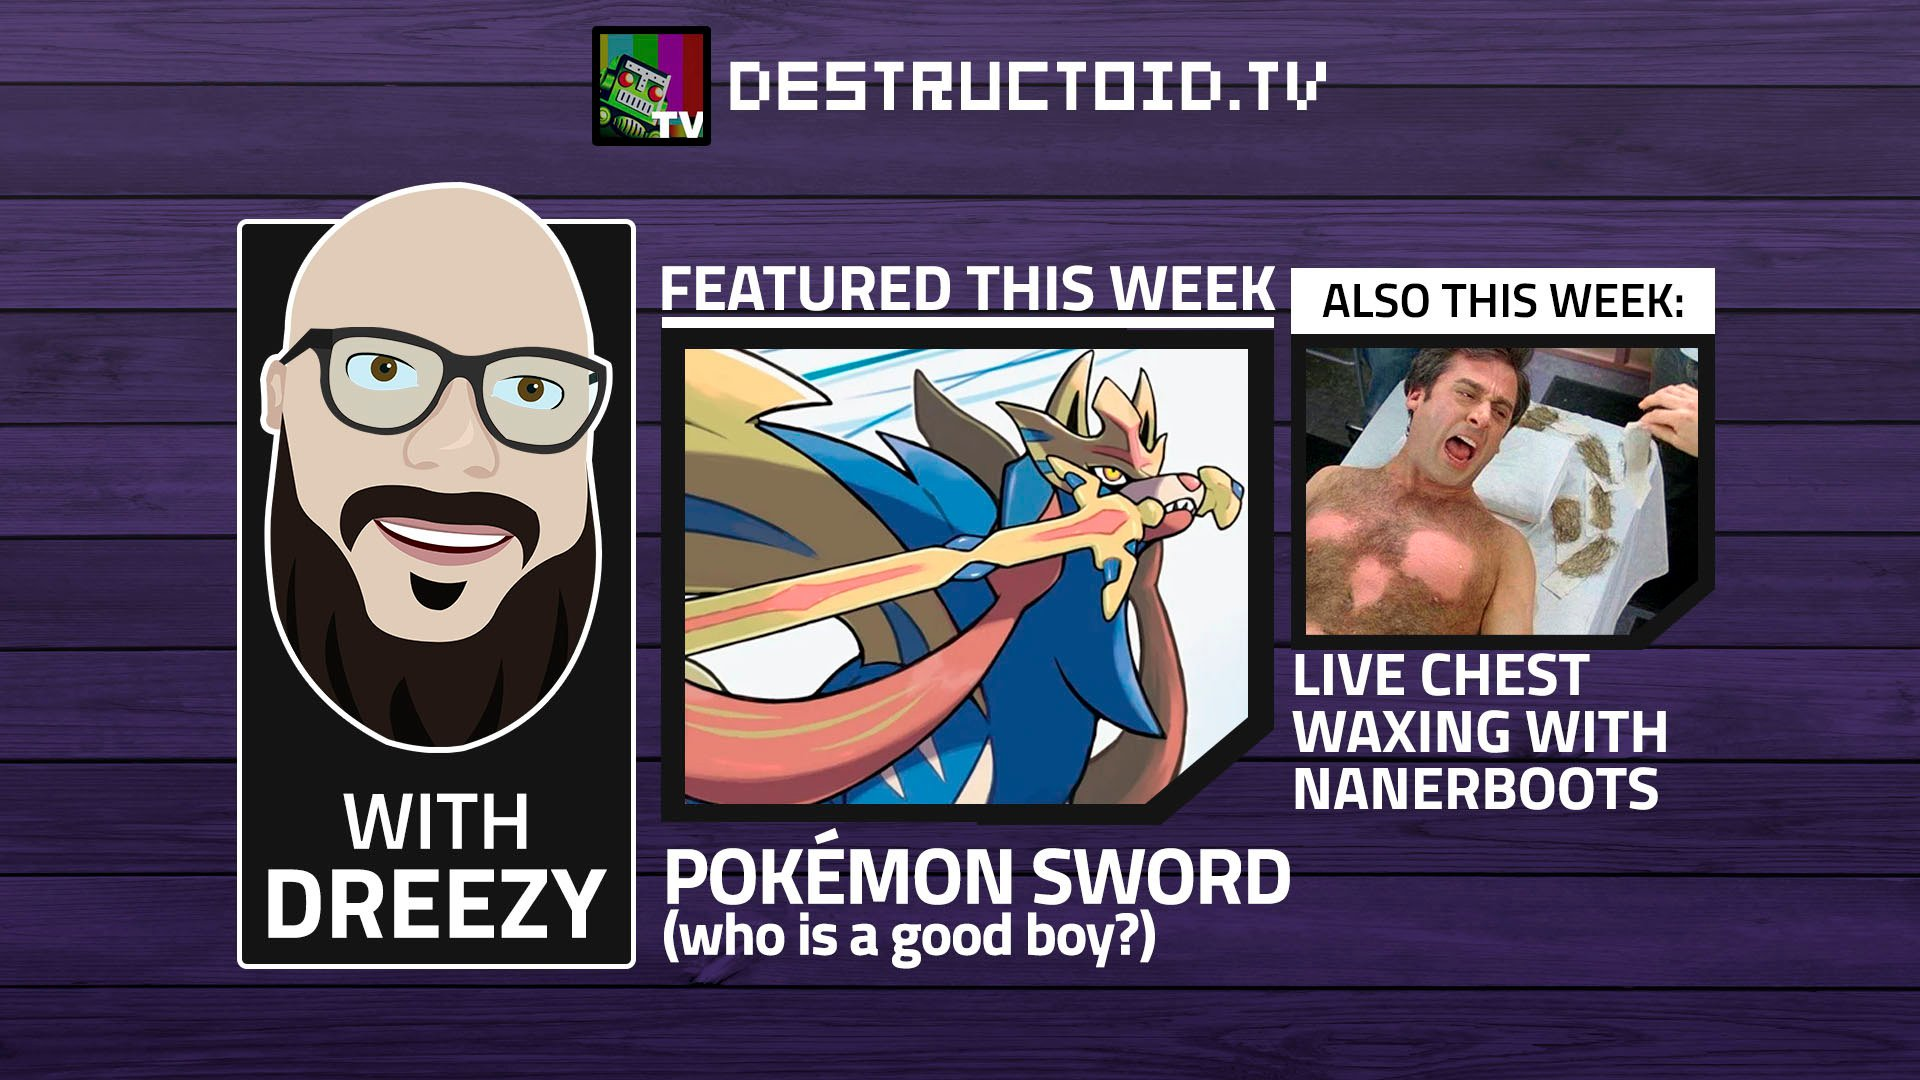 We're live on Twitch this week with Pokemon Sword and another round of chest waxing! screenshot